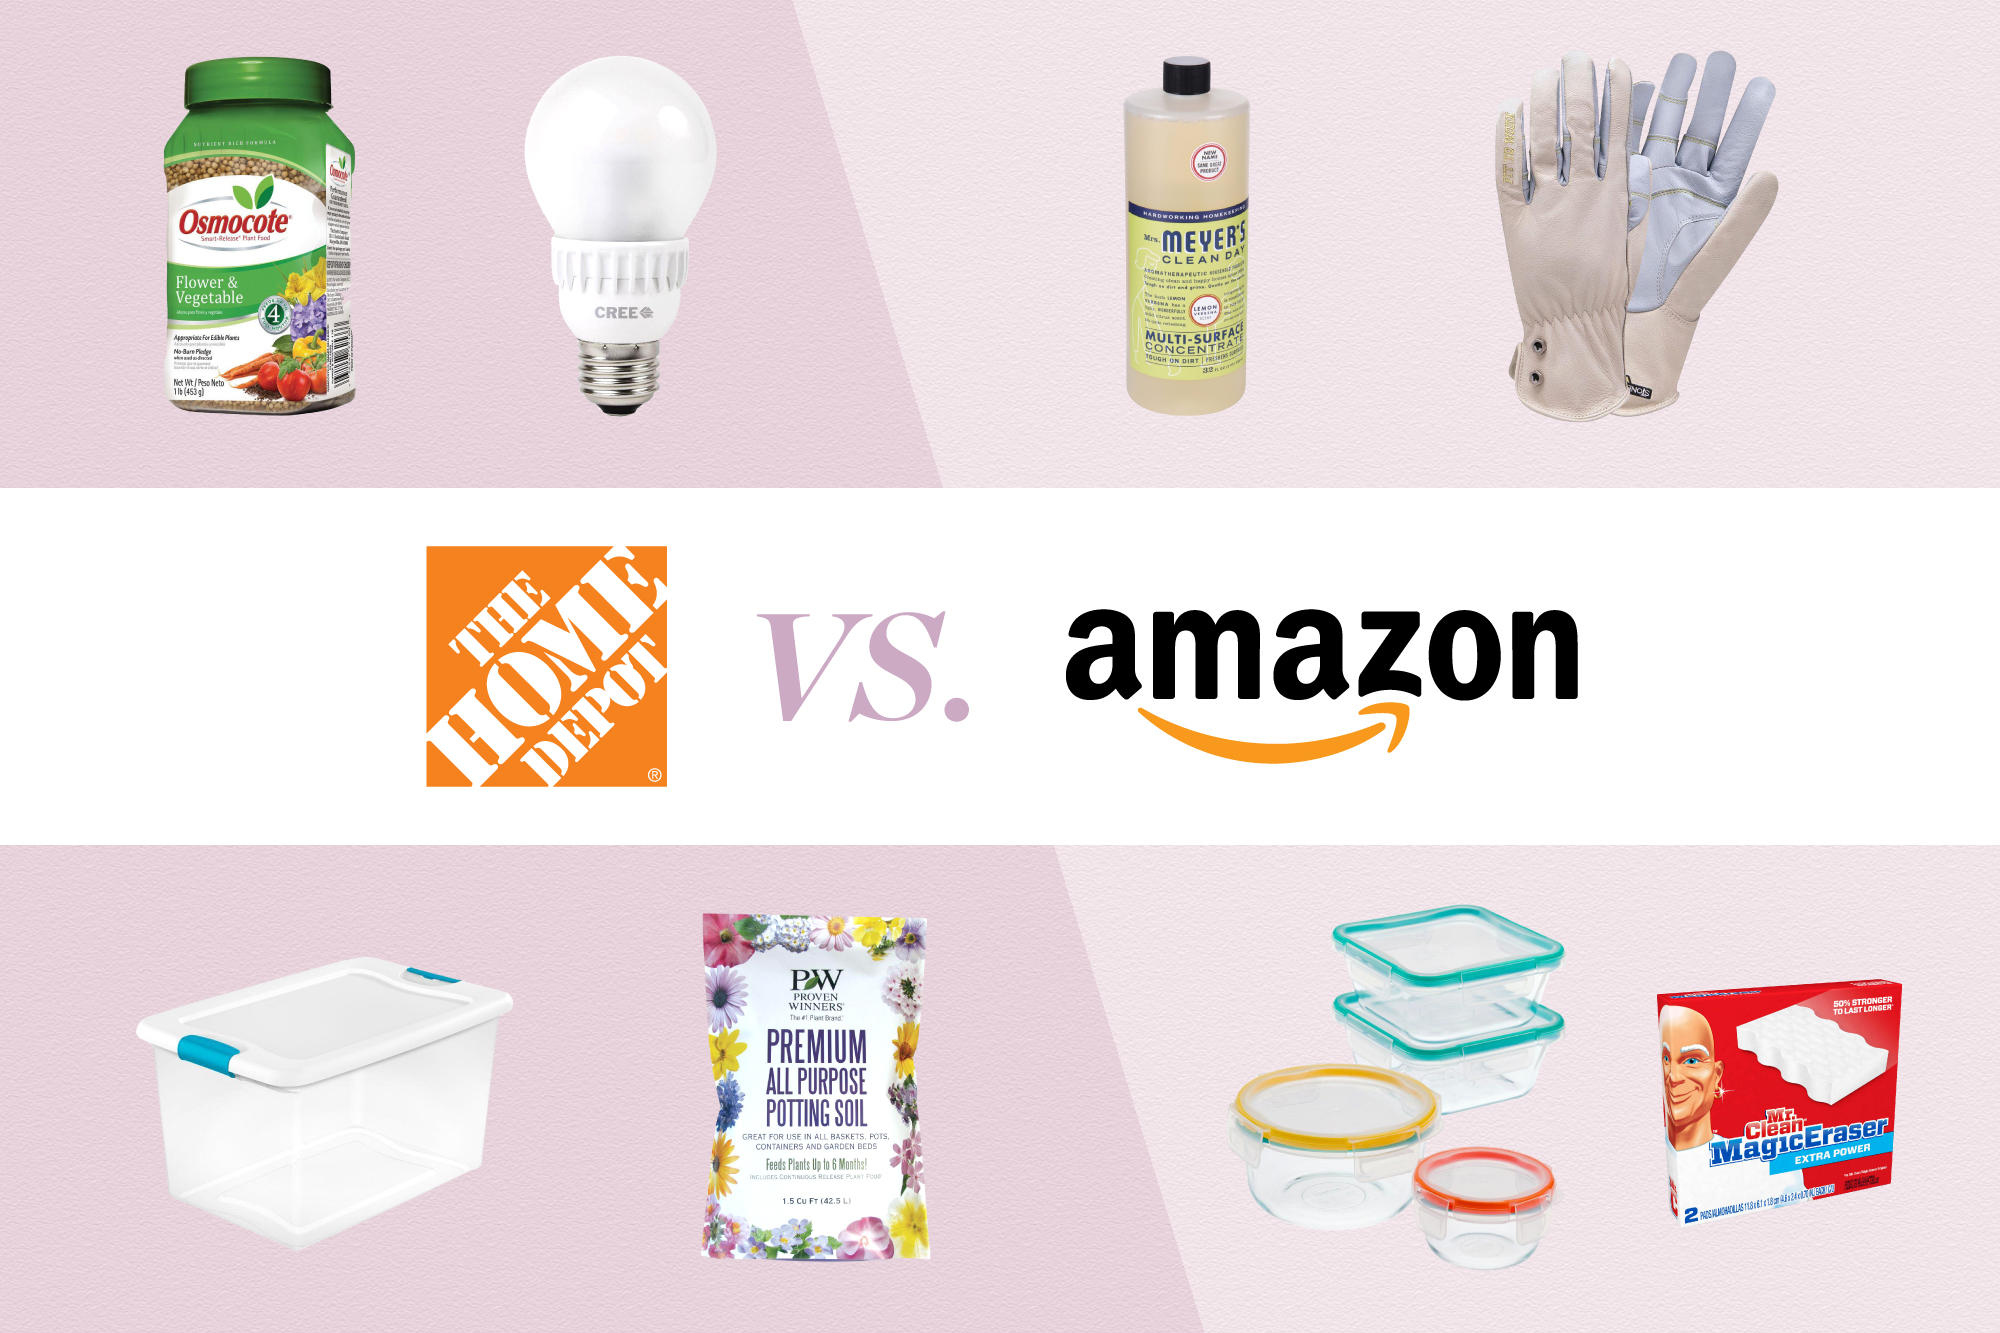 Home Depot Vs Amazon Price Comparison | Apartment Therapy on plants at sam's club, plants at homegoods, plants that repel bugs and pests, plants inside home, plants at ikea, plants under evergreen trees, plants at office depot, plants at michaels, plants with white flowers, plants that repel mosquitoes, vines depot, plants at safeway, plants at disney, plants at kroger, plants at menards, plants at publix, plants at tj maxx, plants at harris teeter, plants at cvs, plants at kmart,